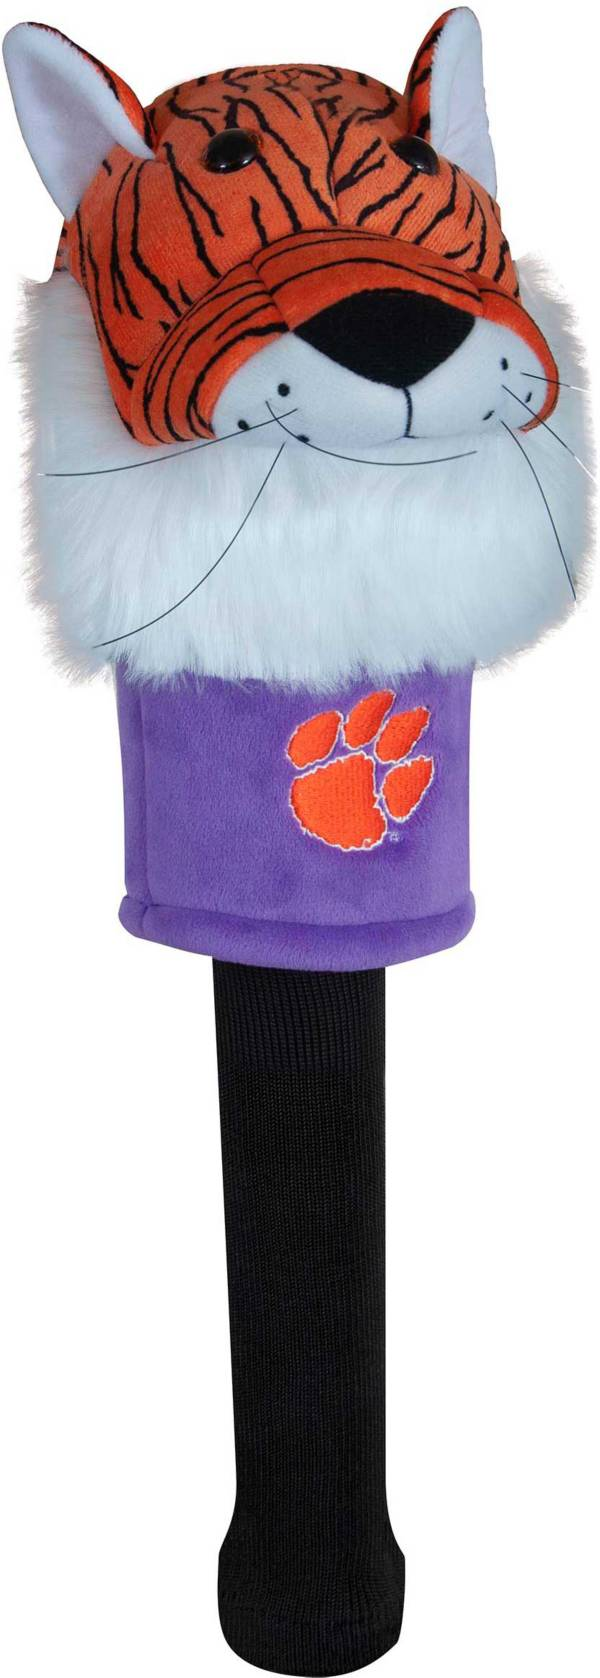 Team Effort Clemson Tigers Mascot Headcover product image